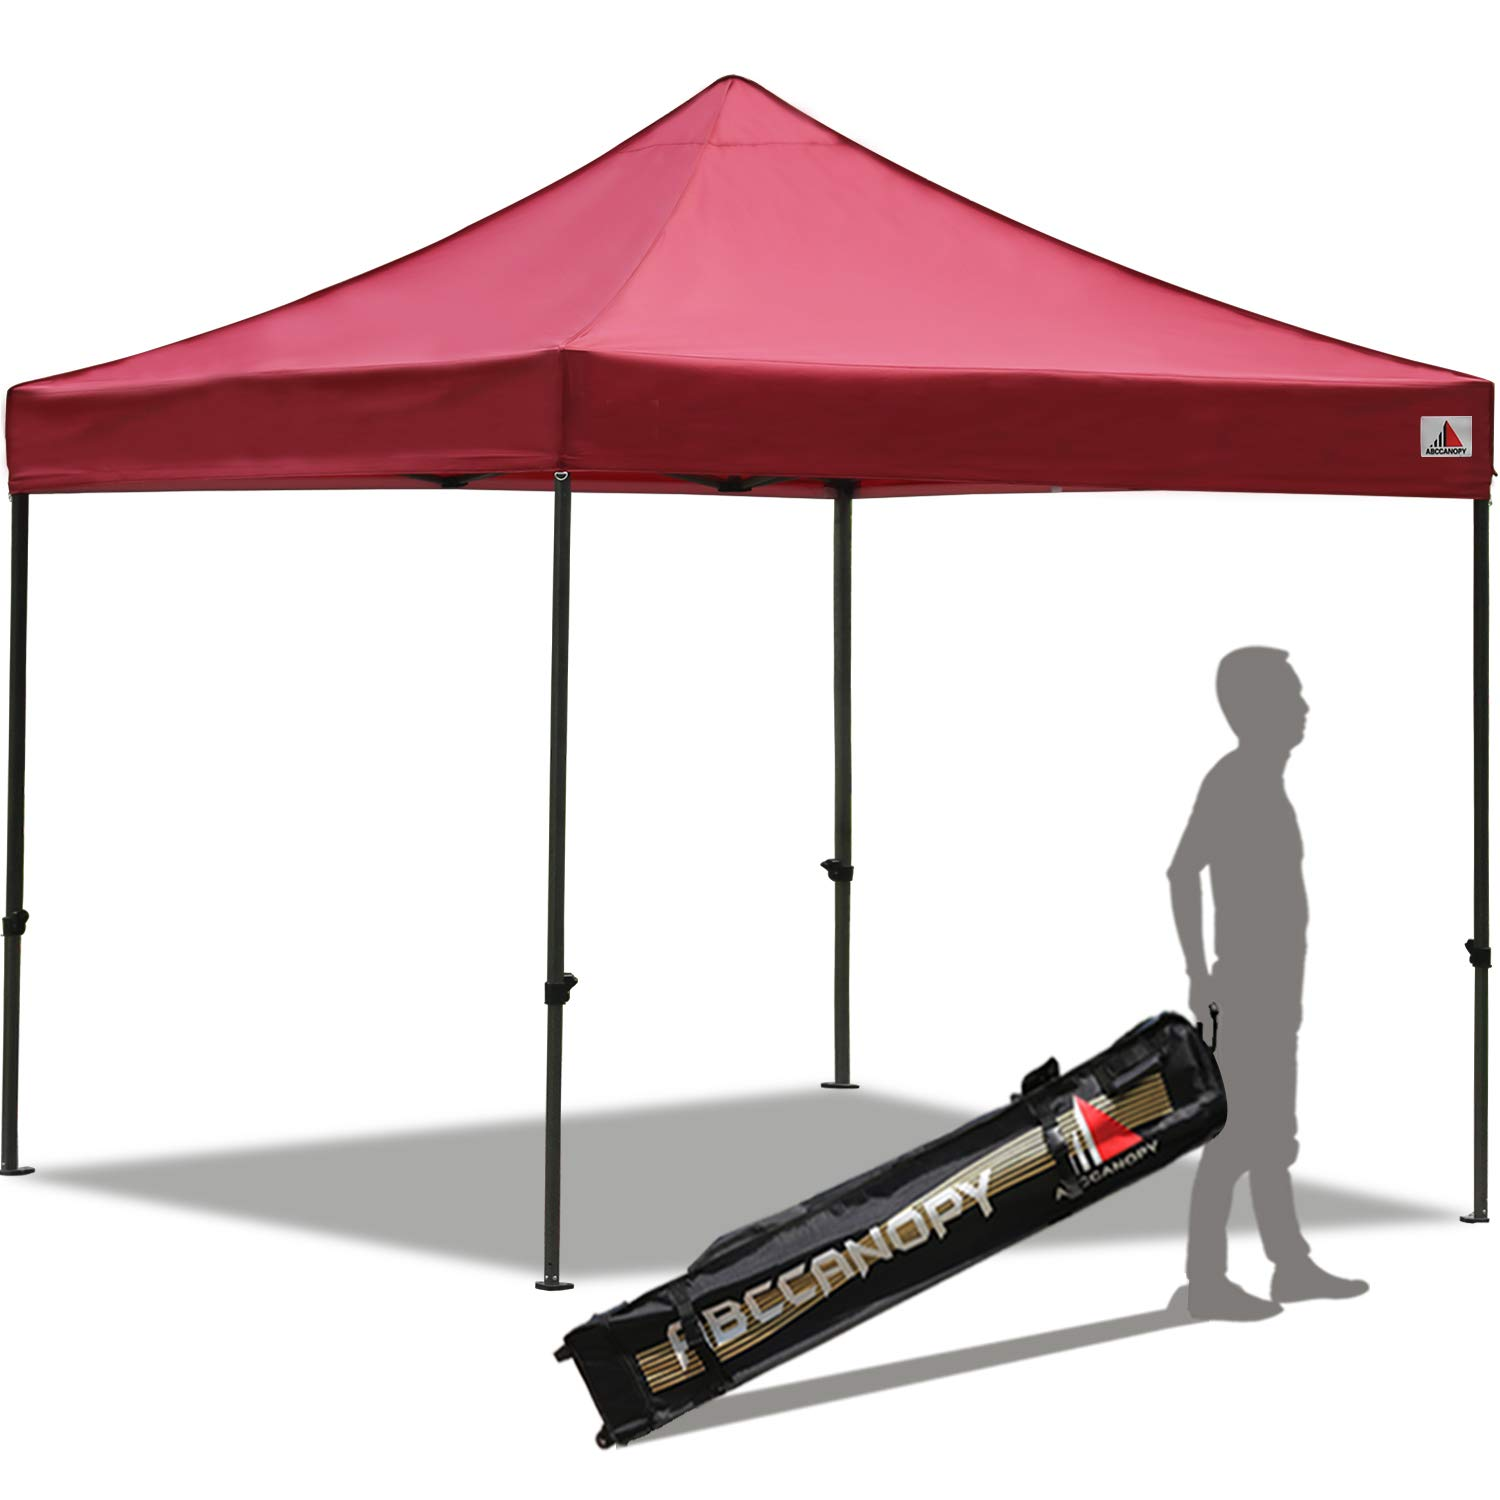 ABCCANOPY Pop up Canopy Tent Commercial Instant Shelter with Wheeled Carry Bag, 10x10 FT Burgundy